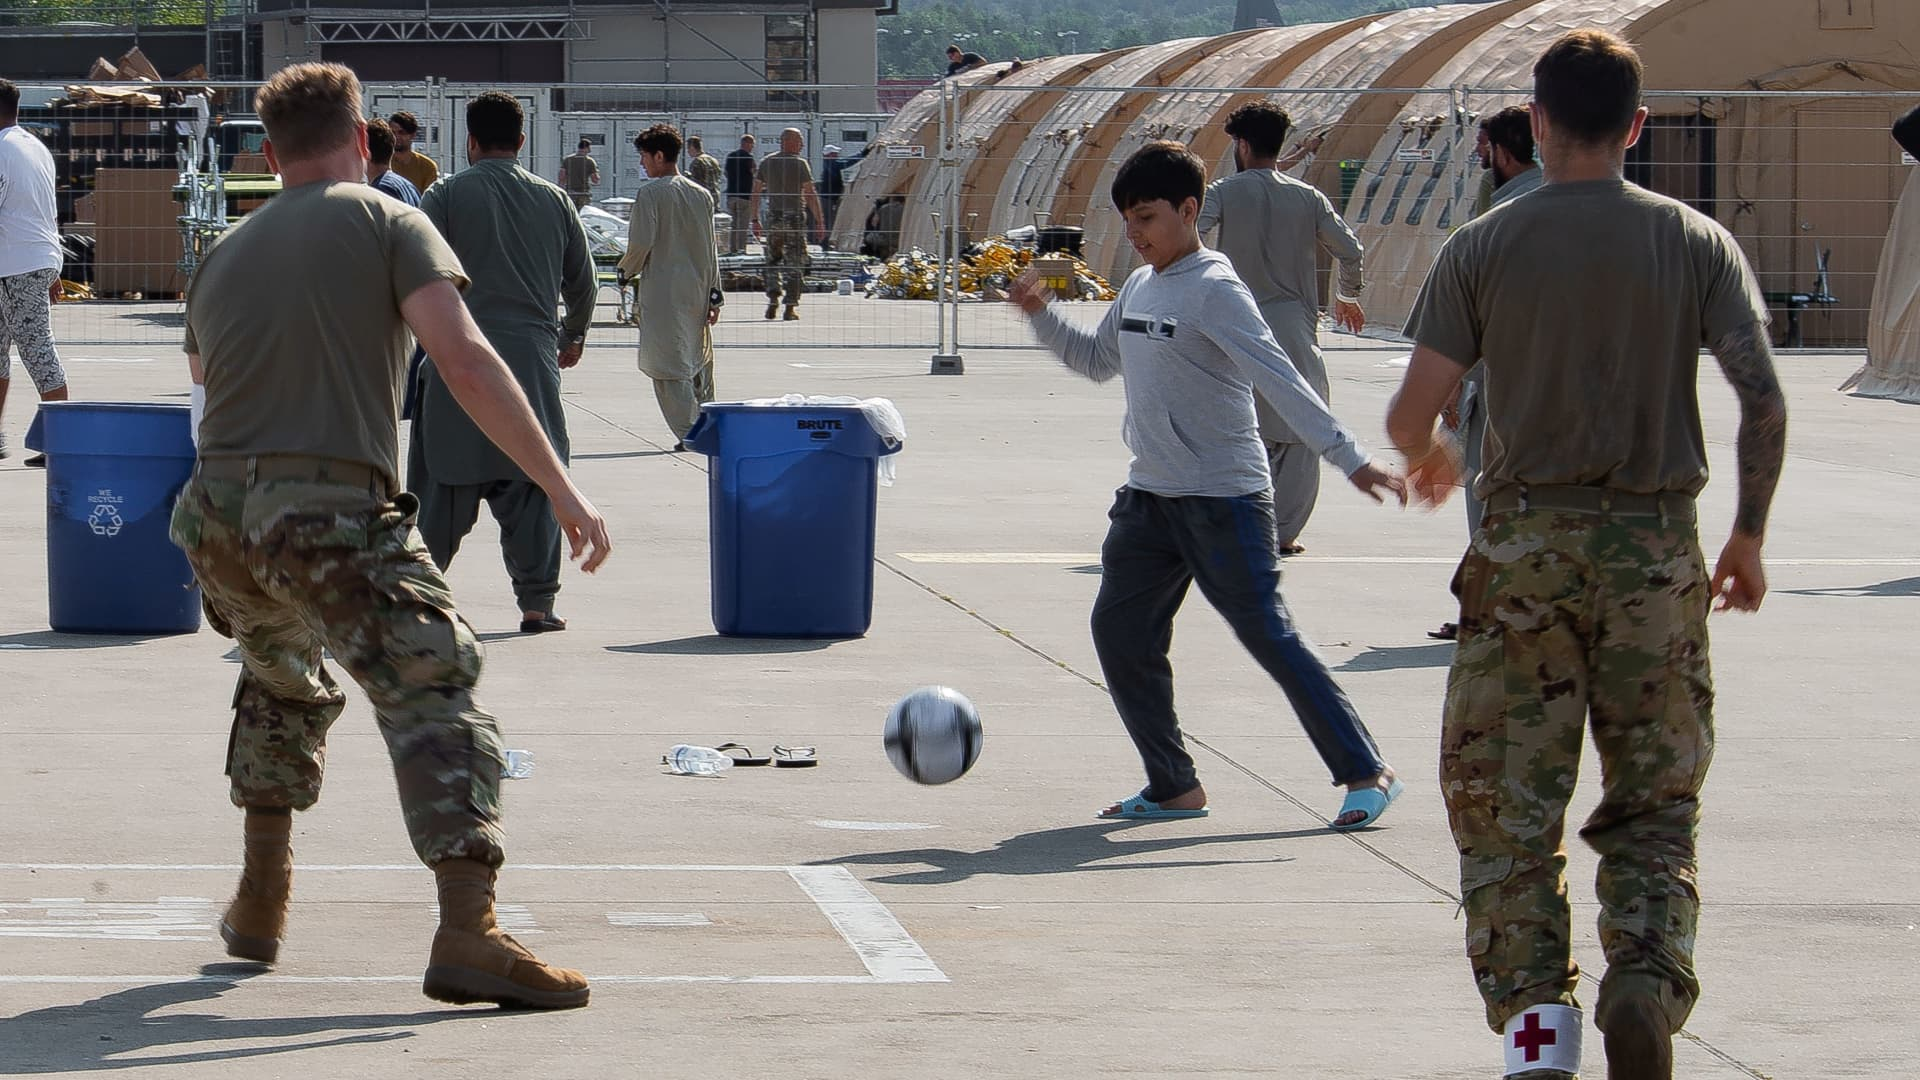 U.S. Air Force airmen play soccer with Afghan evacuees at Ramstein Air Base in Germany on Aug. 21, 2021.